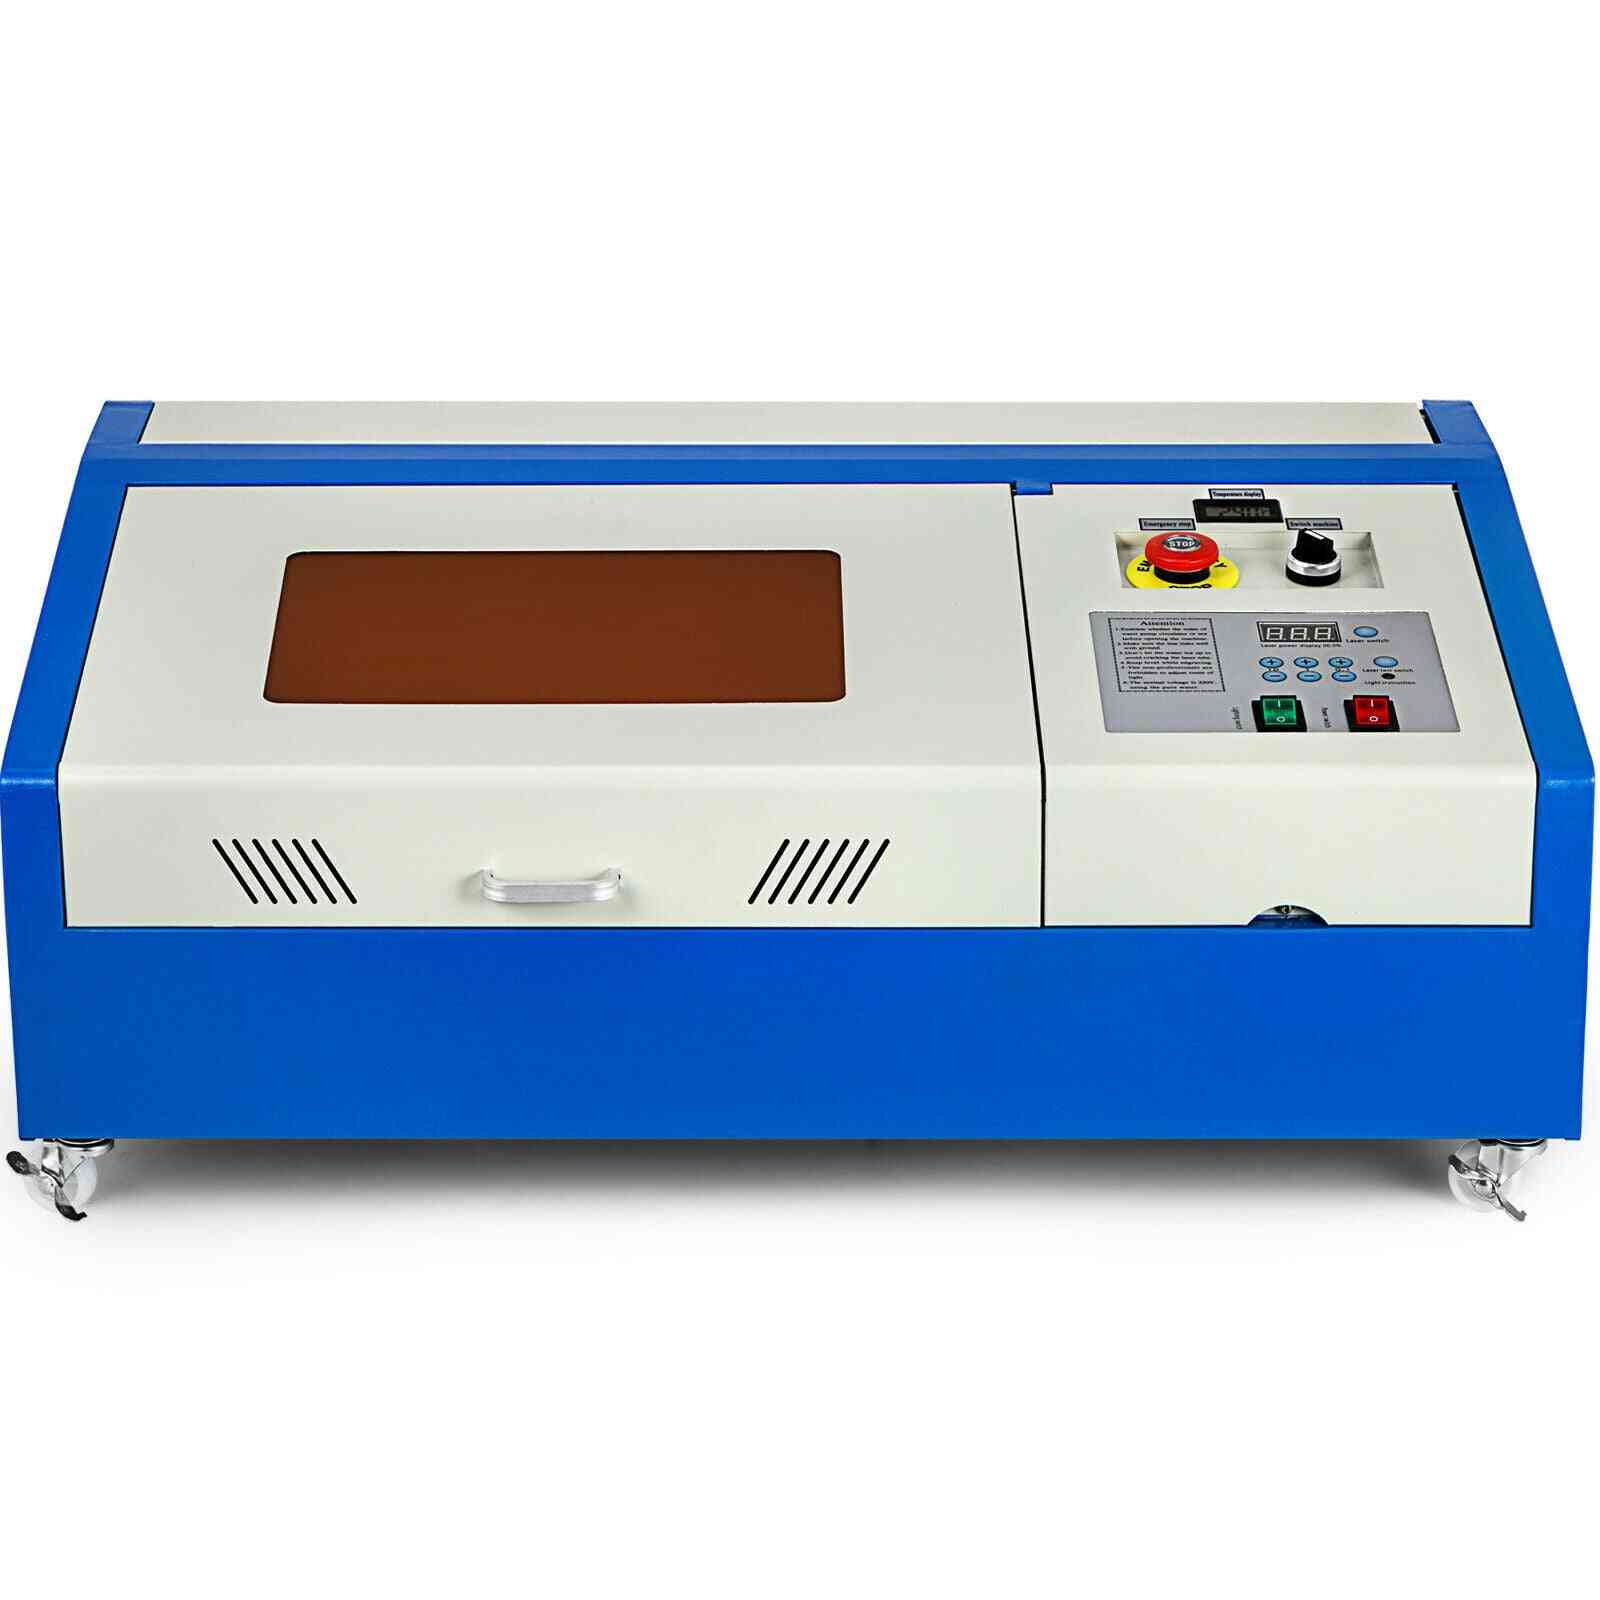 40w Co2 Laser Engraver K40 Engraving Cutting Machine Lcd 300x200mm W/wheels With Laser Tube For Bamboo Plank Wood Acrylic